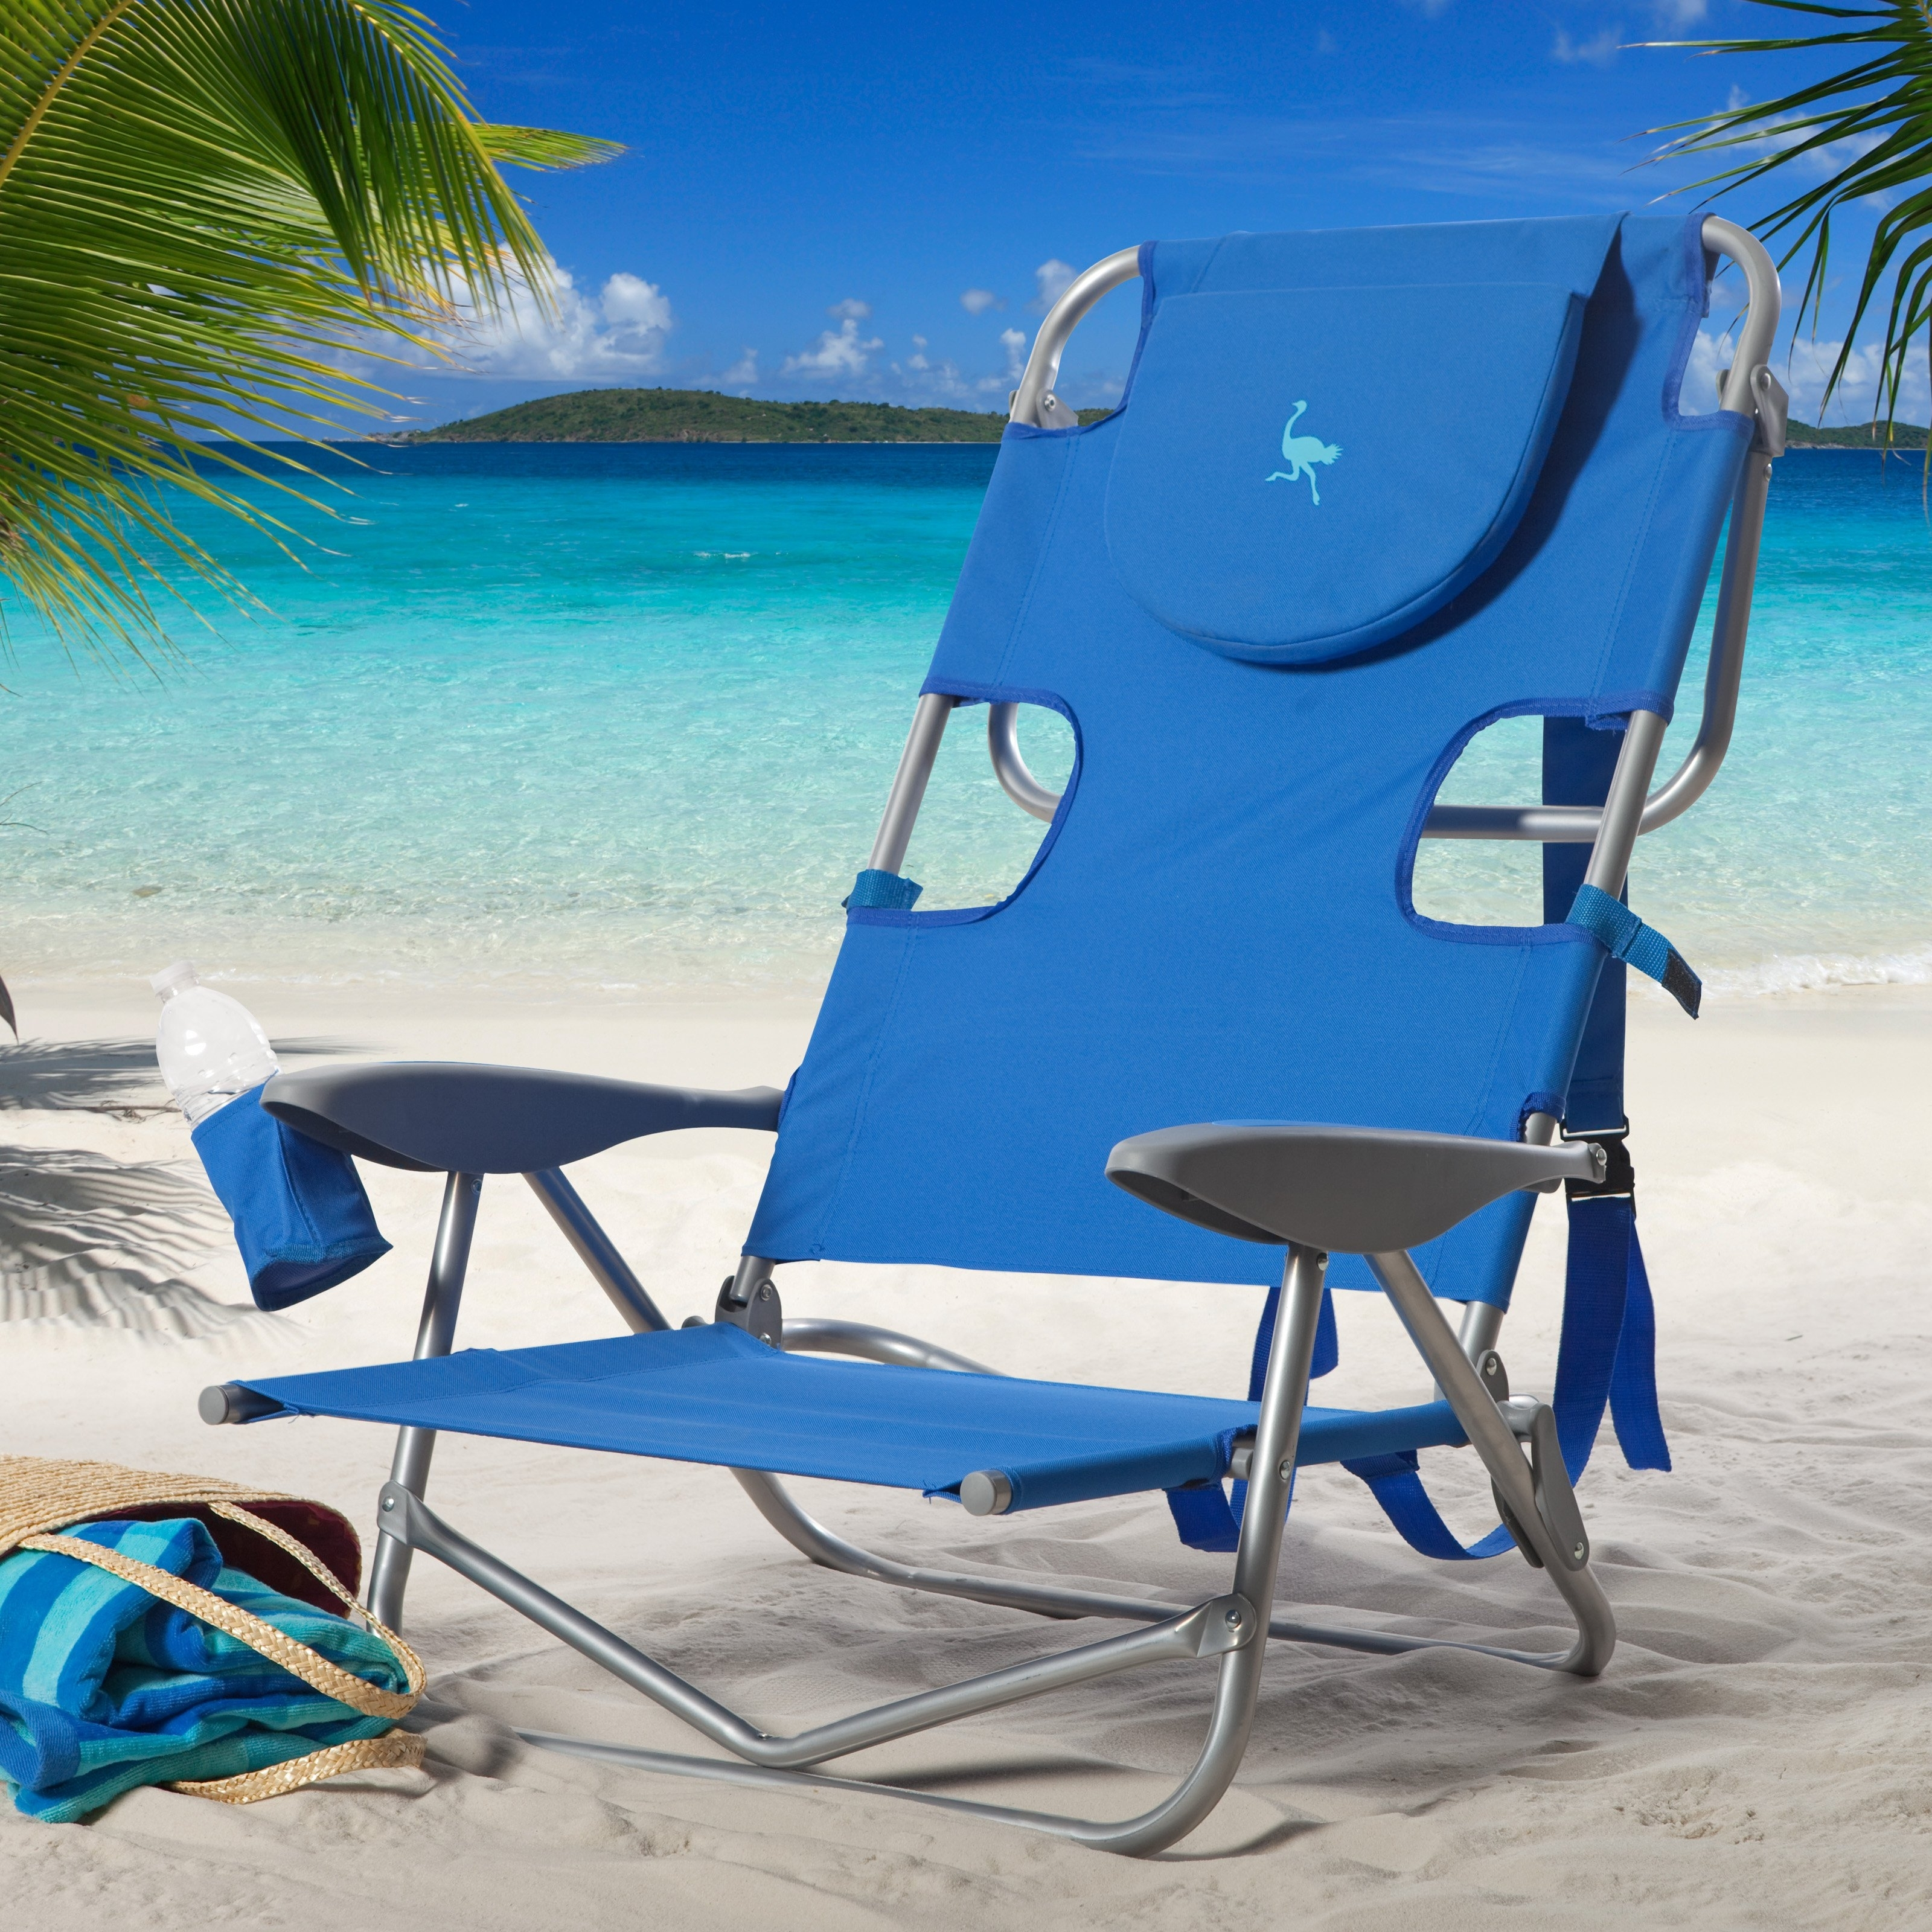 Beach Chairs – For A Comfortable And Relaxing Vacation Time Within Fashionable Beach Chaises (View 6 of 15)